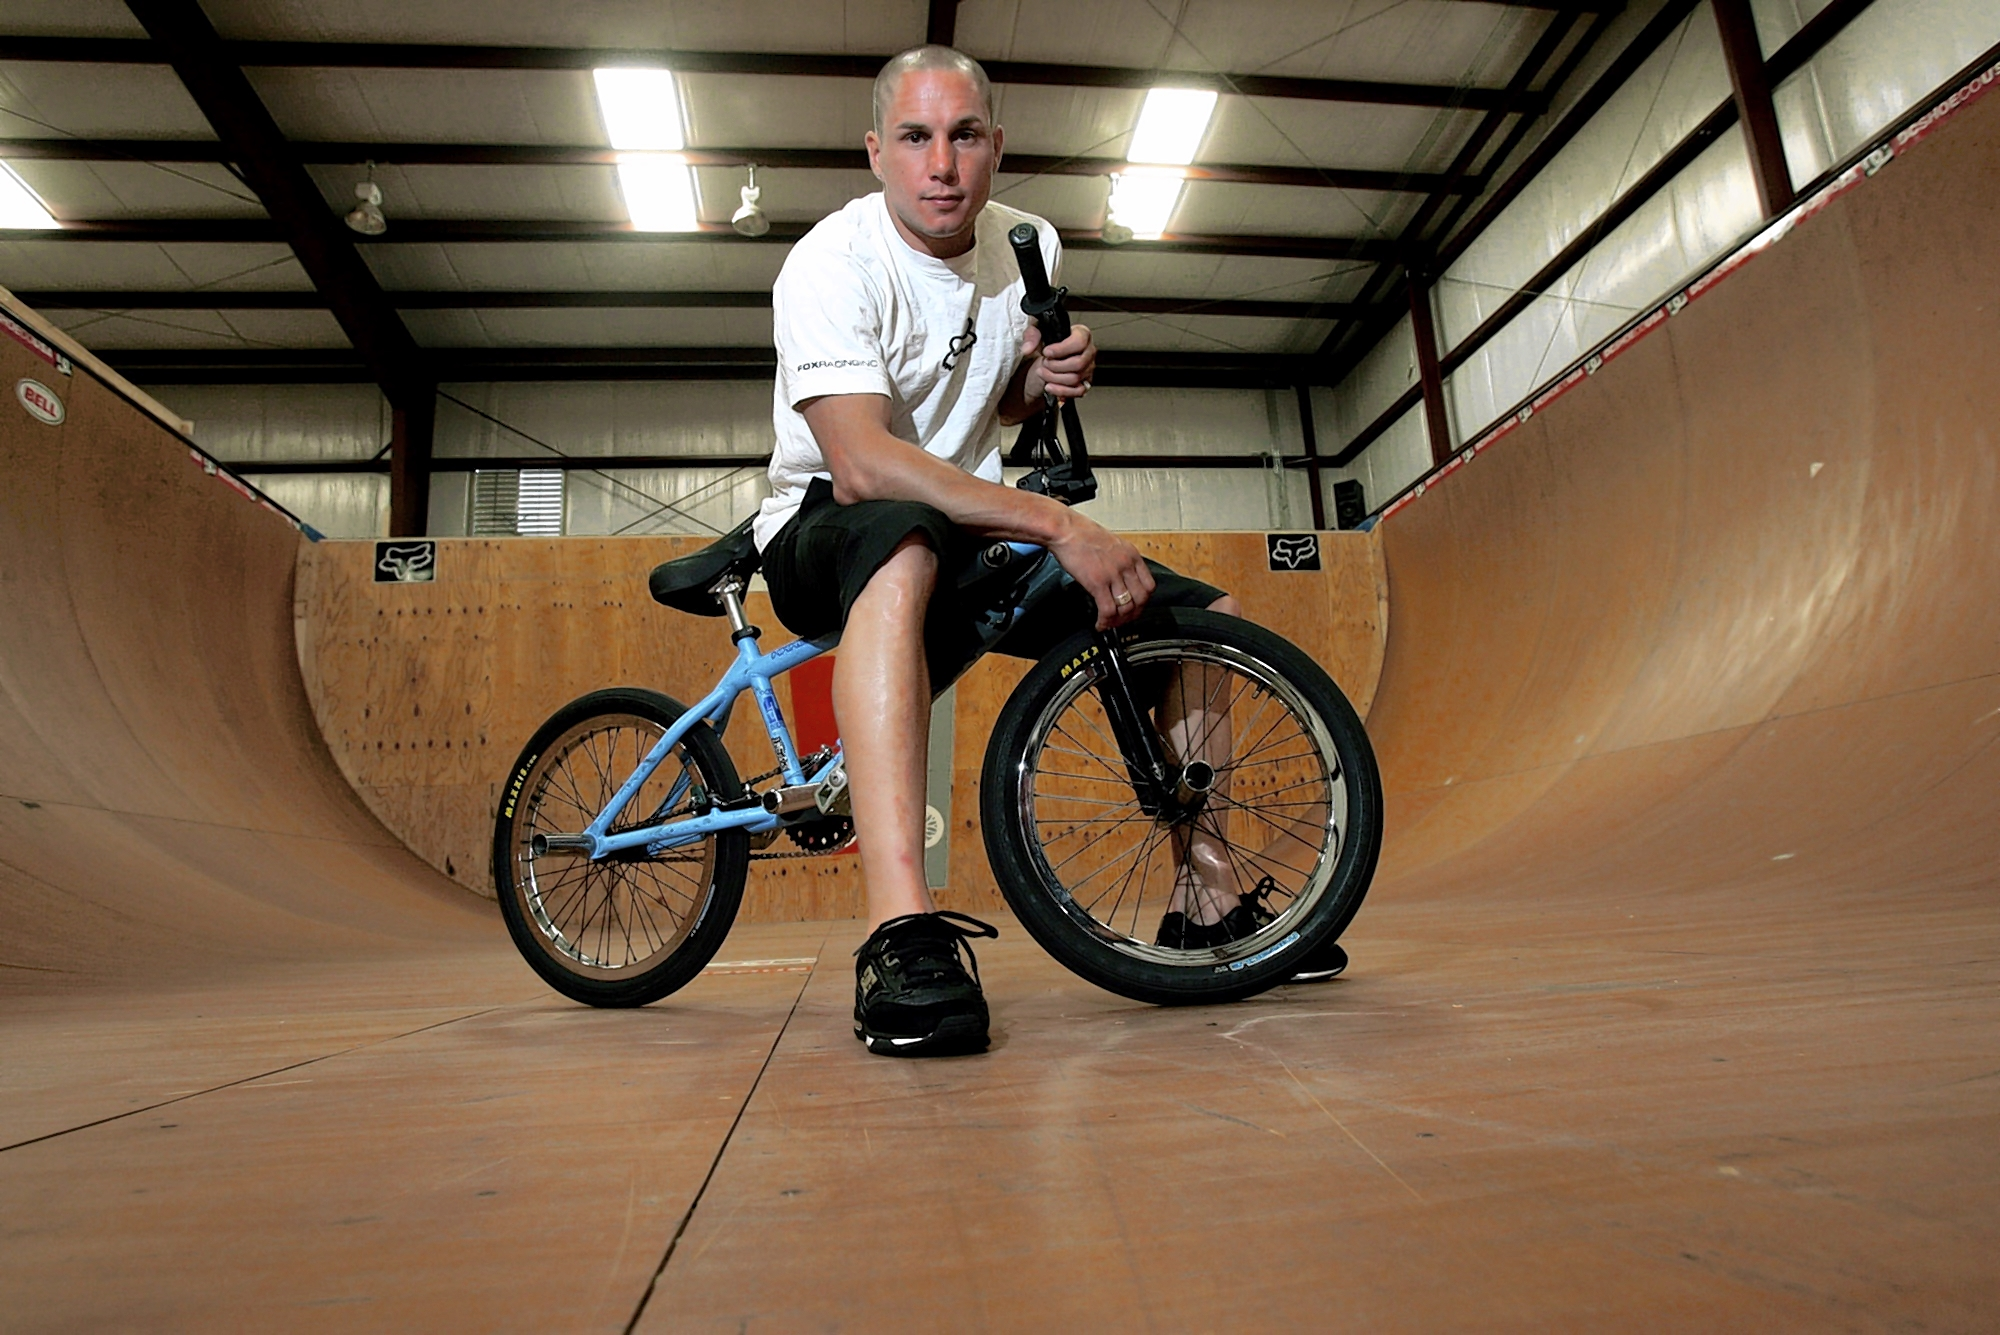 X-Games athlete Dave Mirra poses in the half-pipe at his training facility in Greenville, N.C., June 24, 2005